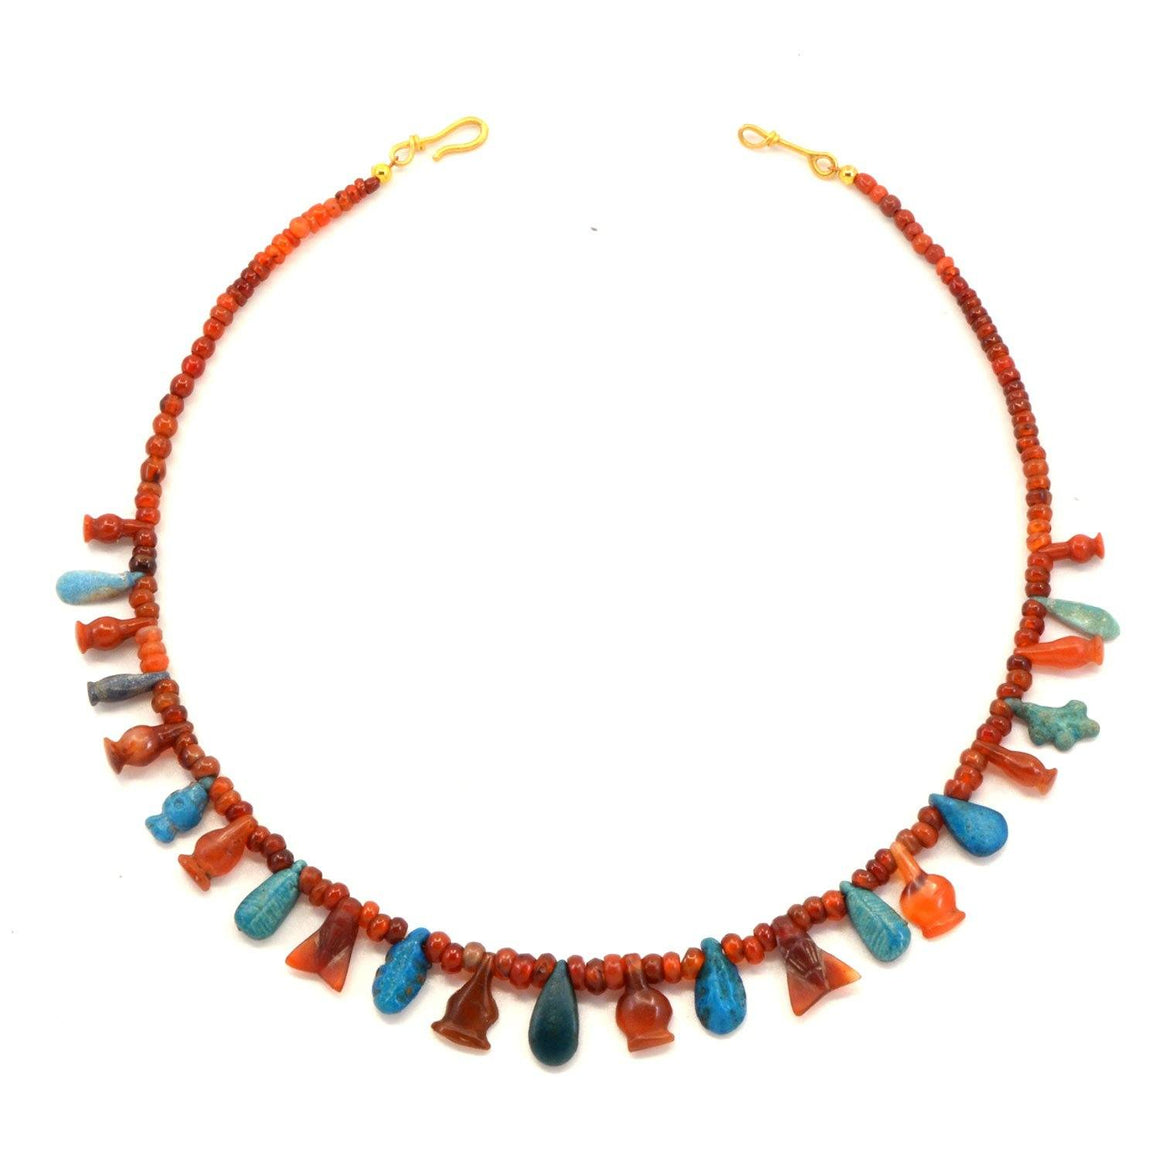 An Egyptian Carnelian and Faience Bead and Pendant Necklace, New Kingdom, ca 1550 - 1069 BCE - Sands of Time Ancient Art